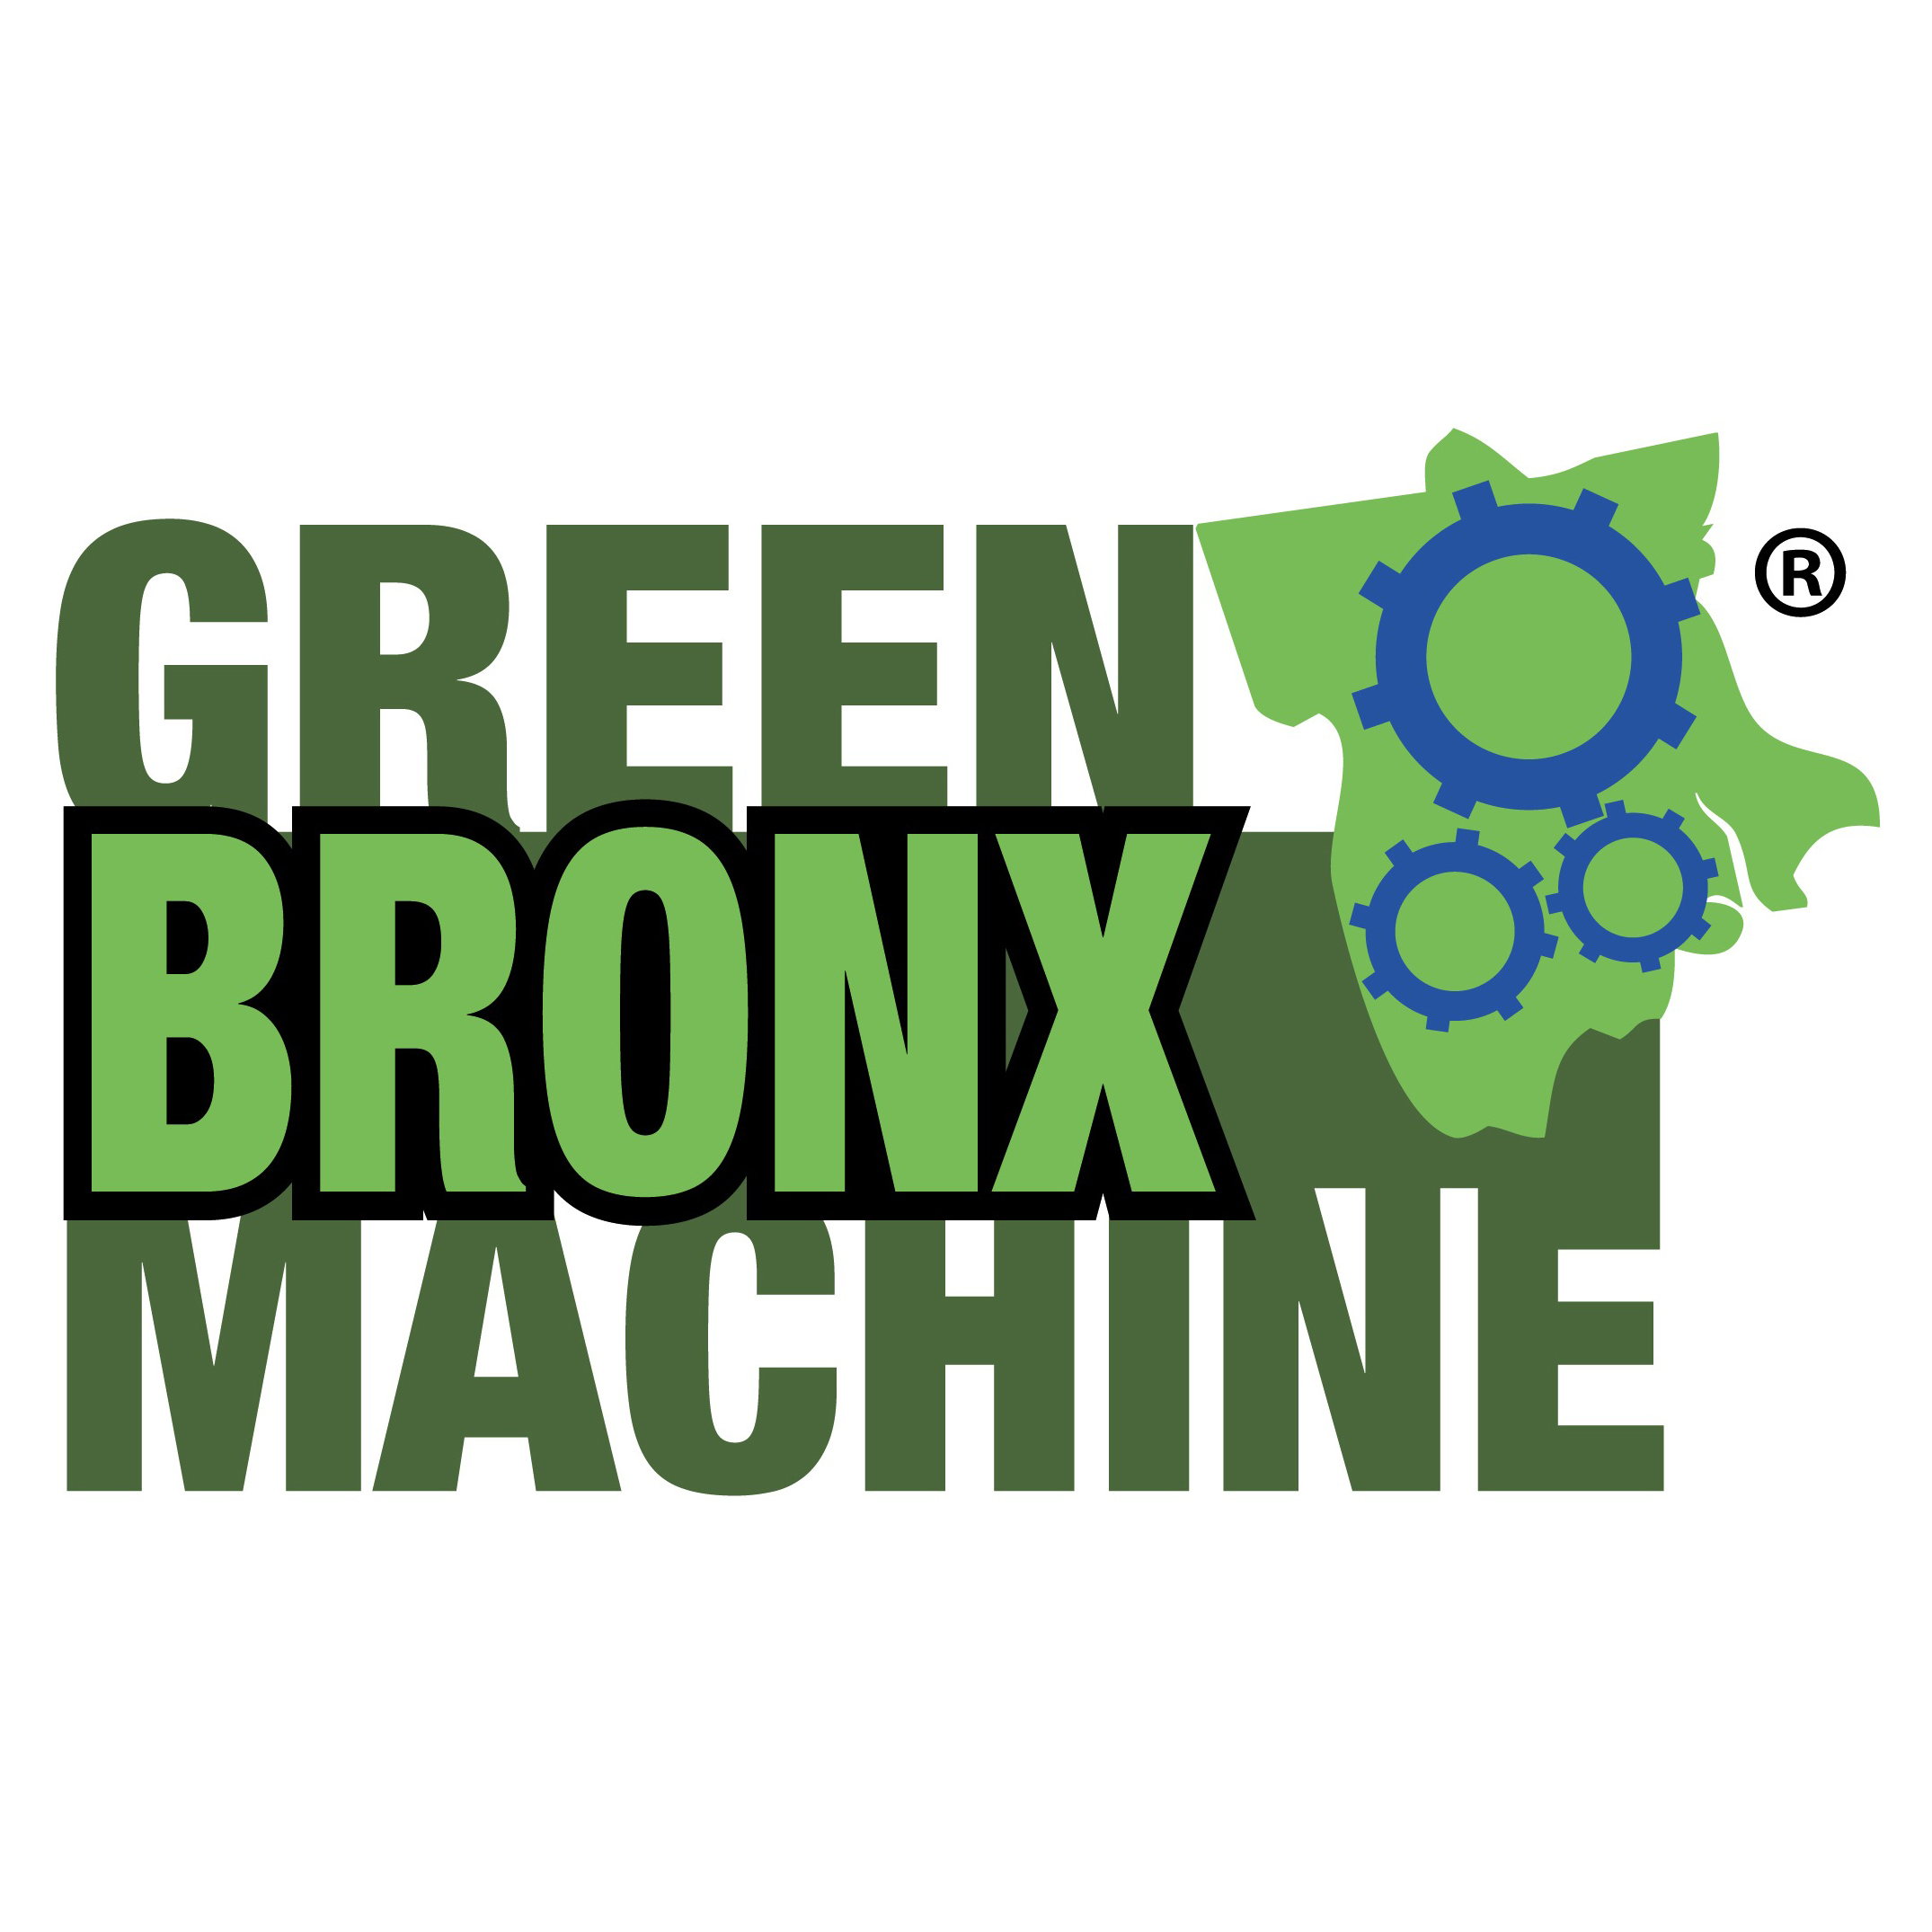 Meet Green Bronx Machine